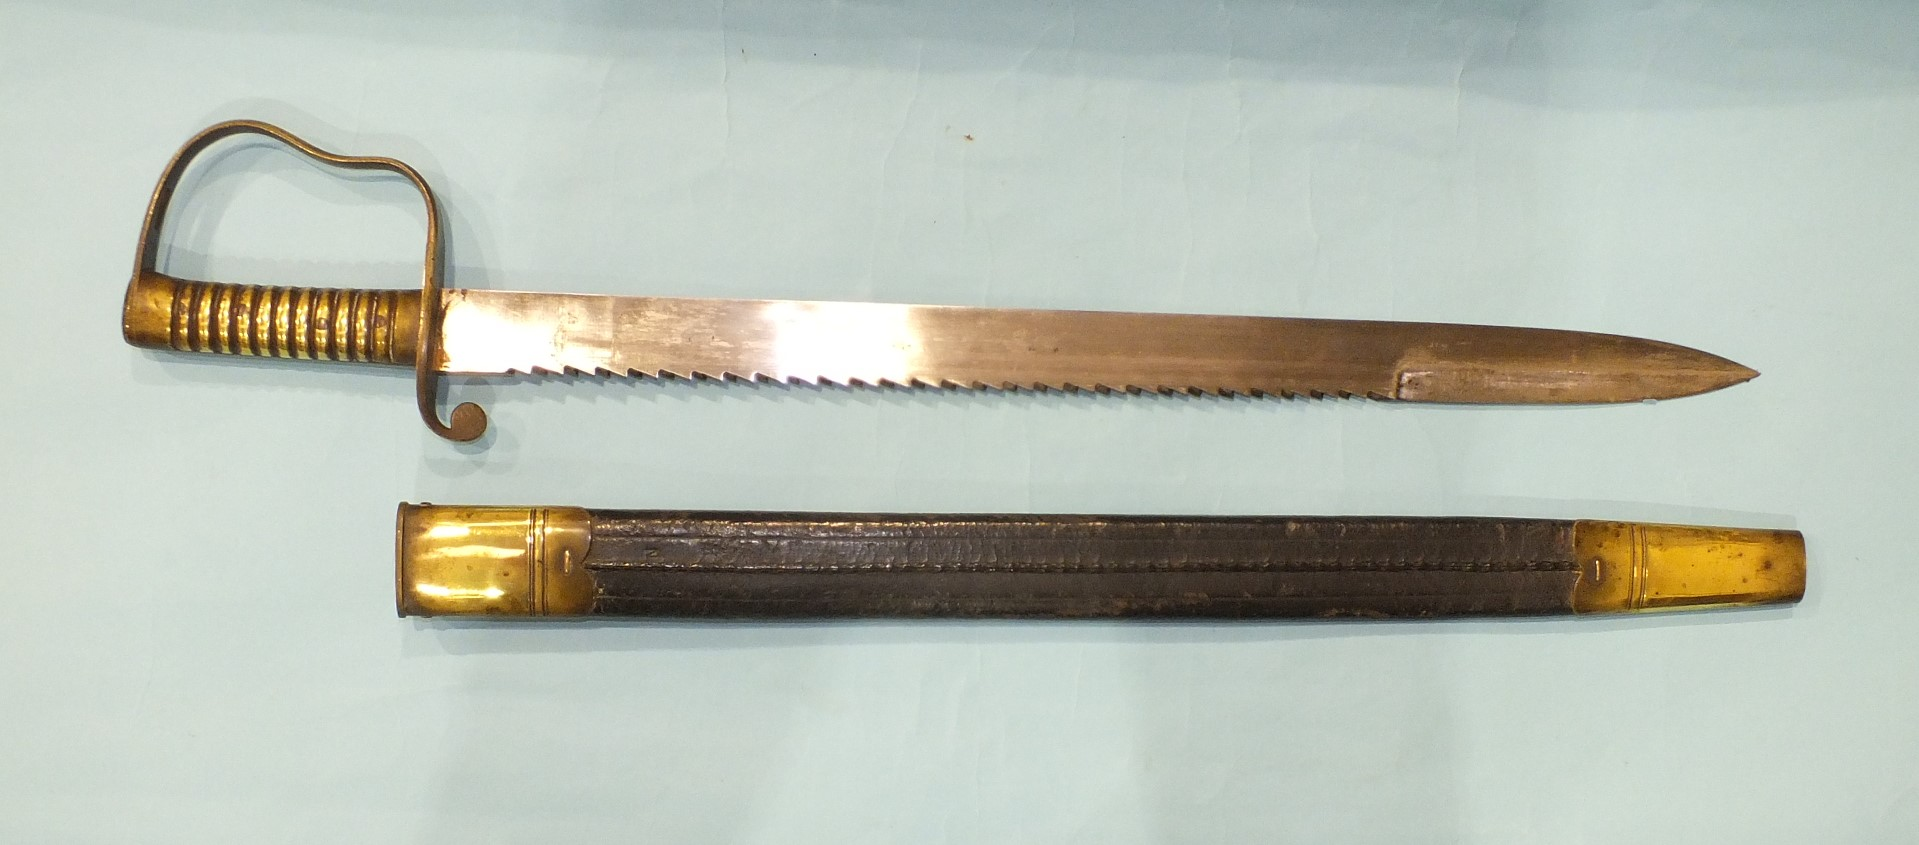 Lot 223 - A British Pioneer sword with brass hilt and saw backed blade, 57cm, marked with crown over B21 and